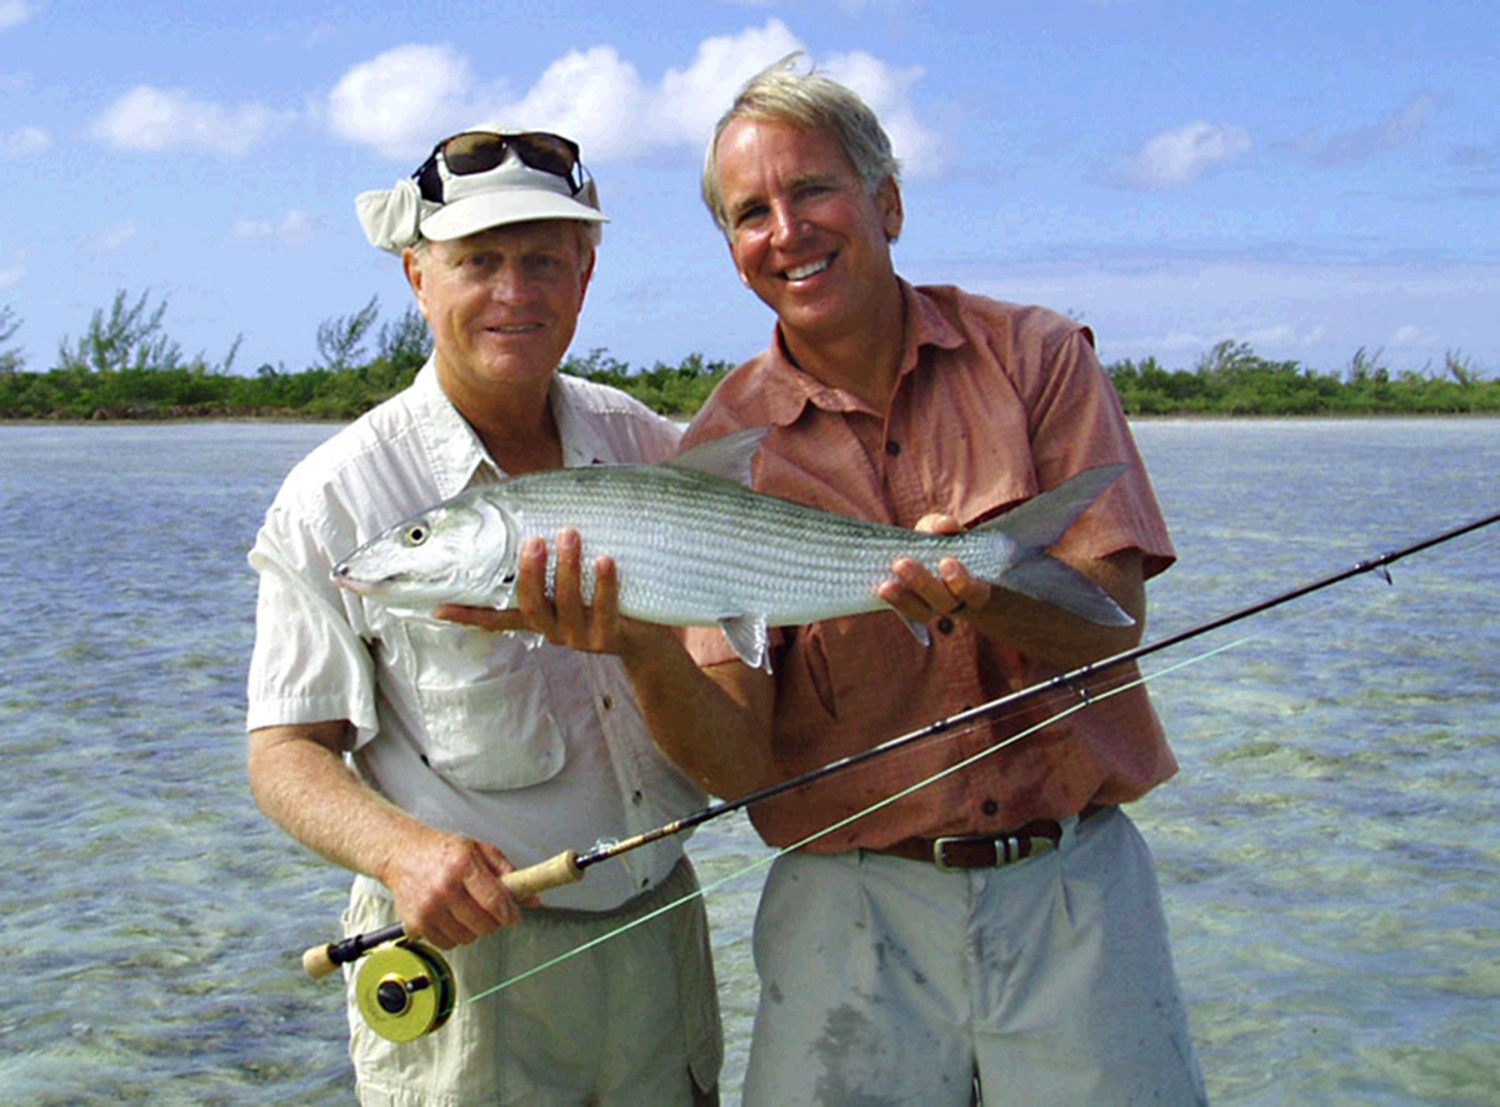 Golfing great Jack Nicklaus loves to fly fish for bonefish when he's